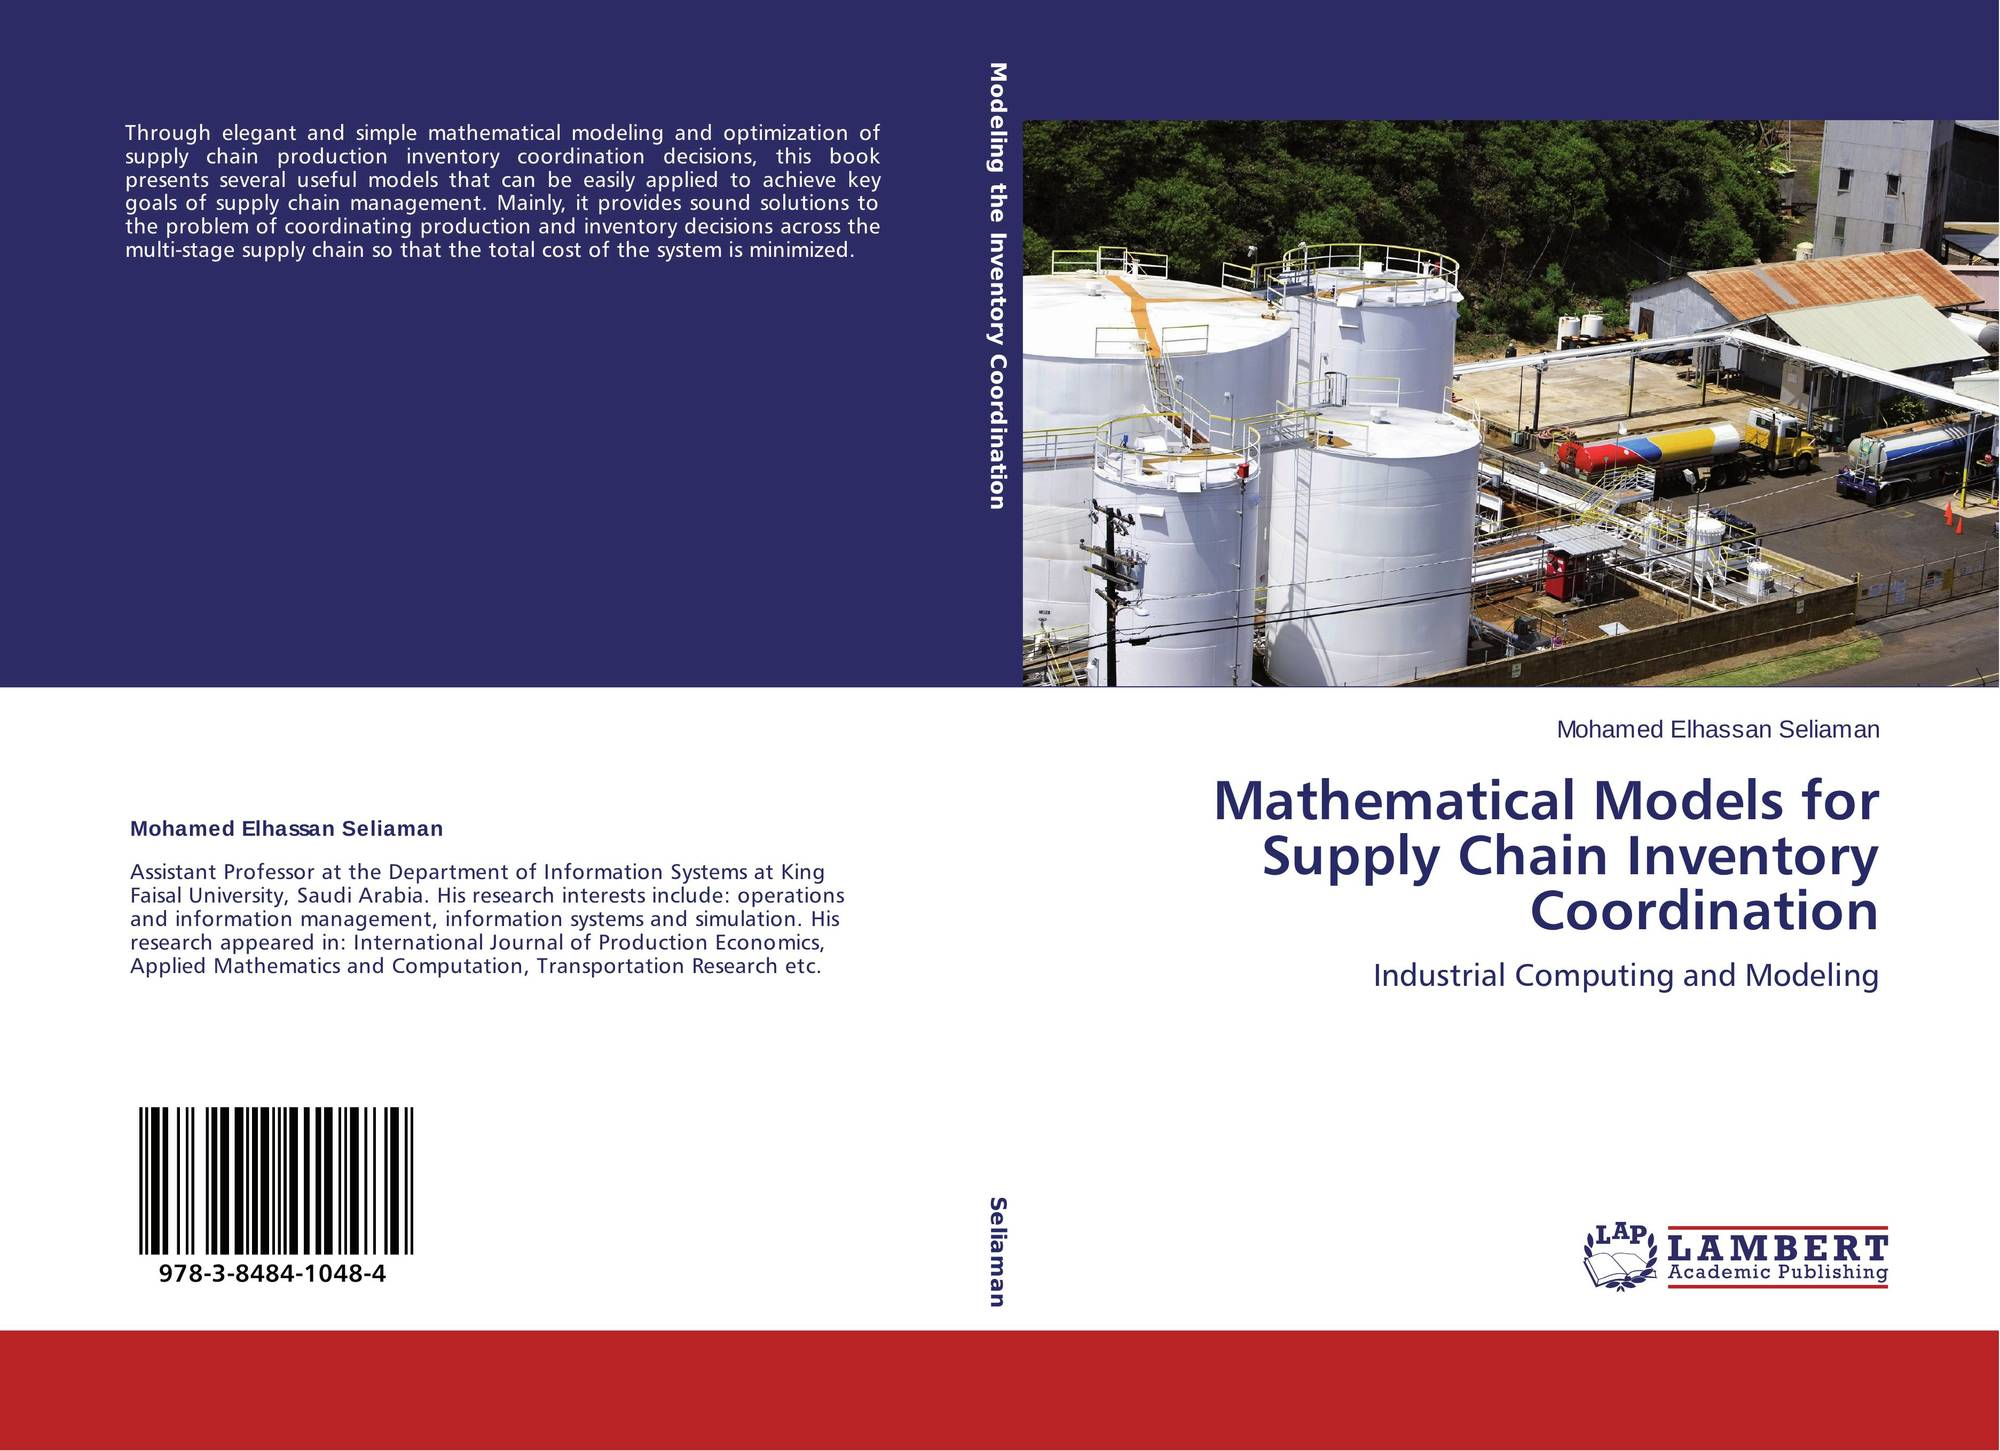 Mathematical Models for Supply Chain Inventory Coordination